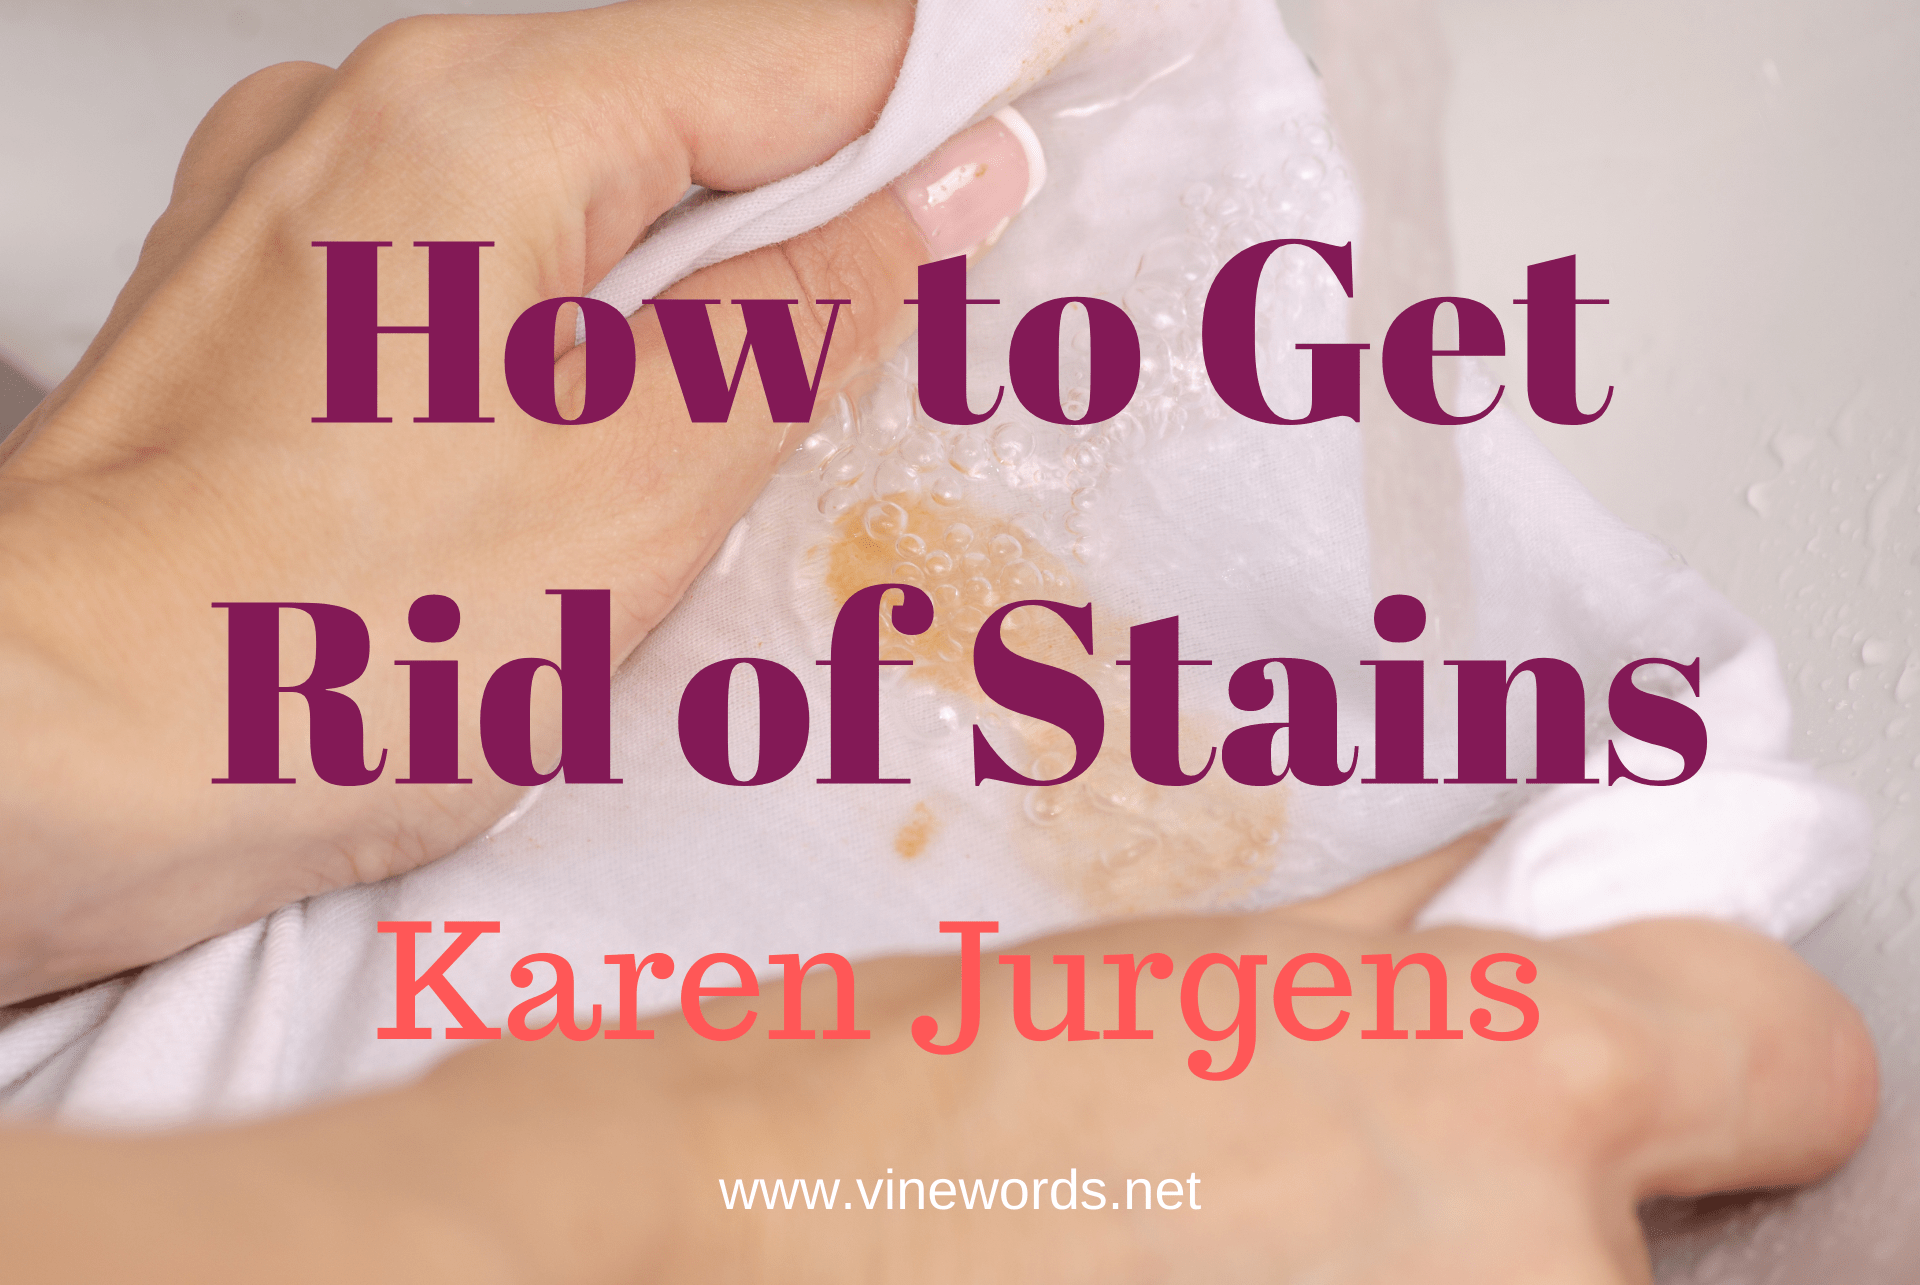 Karen Jurgens: How to Get Rid of Stains